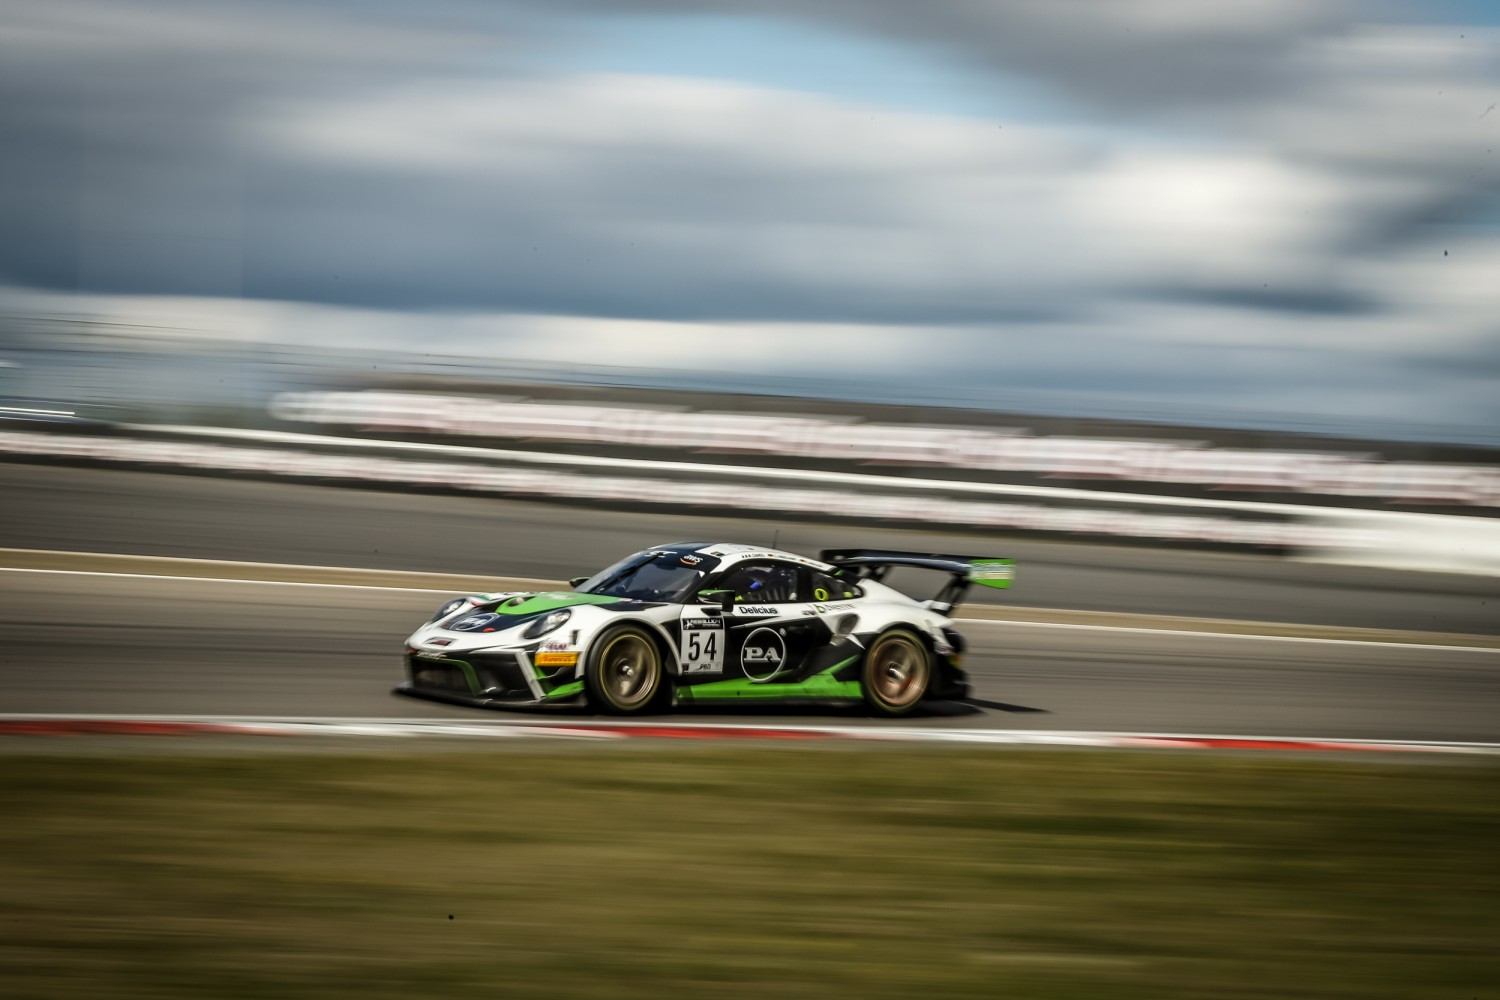 Dinamic Motorsport conquers the Nürburgring to give Porsche resounding home triumph